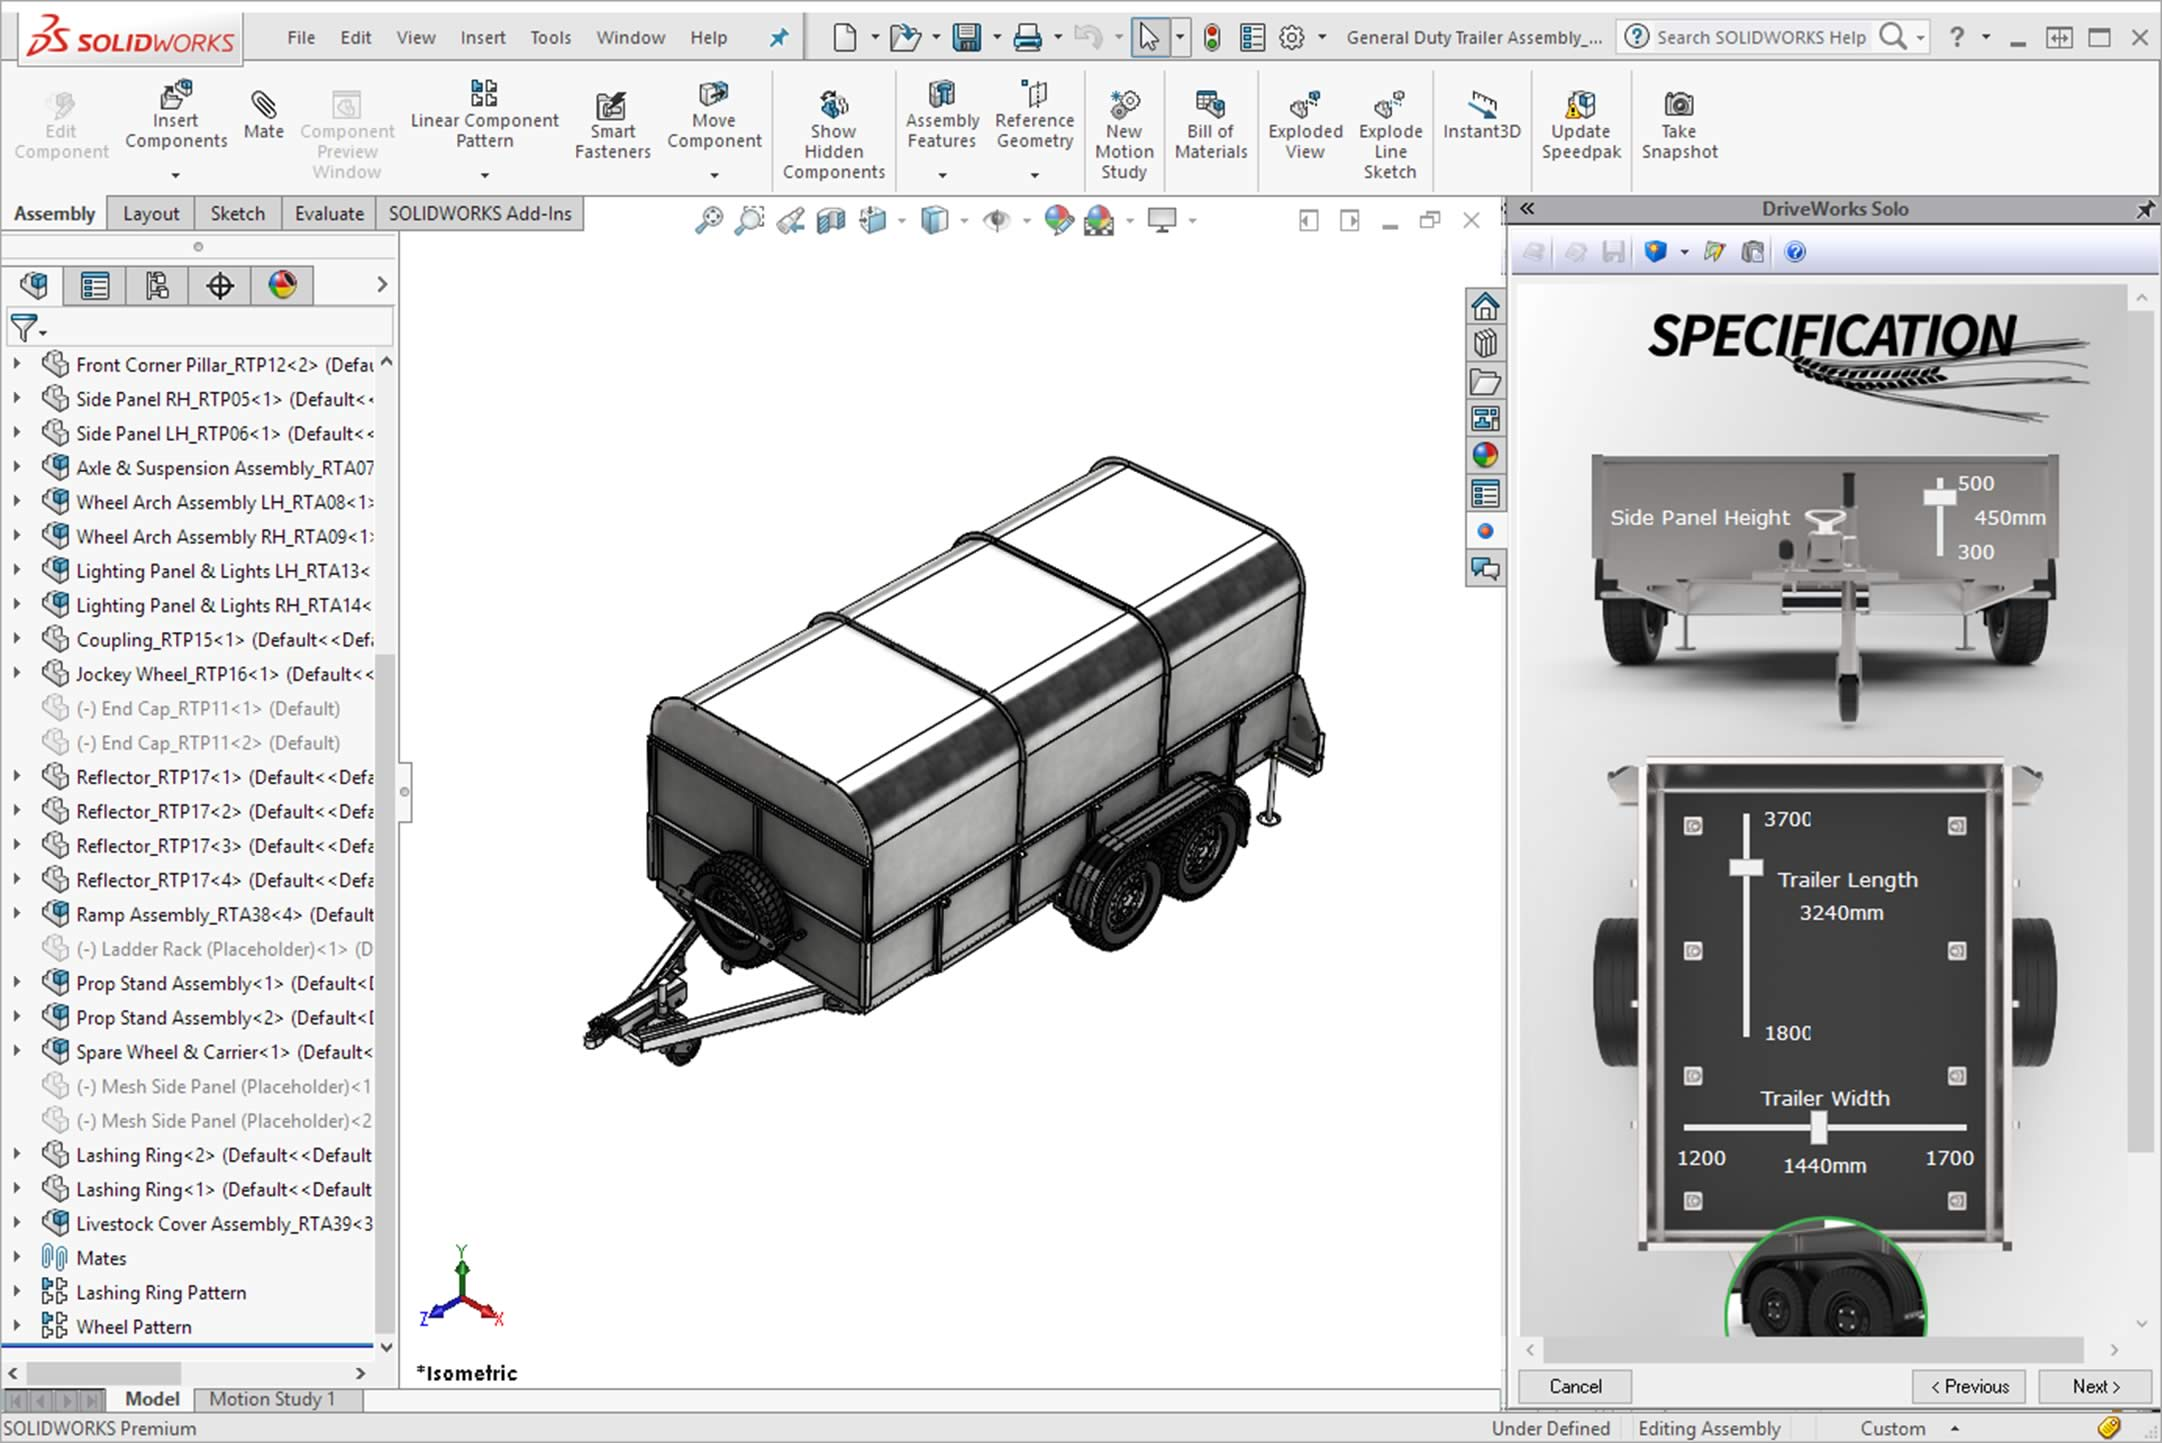 DriveWorks SOLIDWORKS Add-in for Automation & Sales Configuration